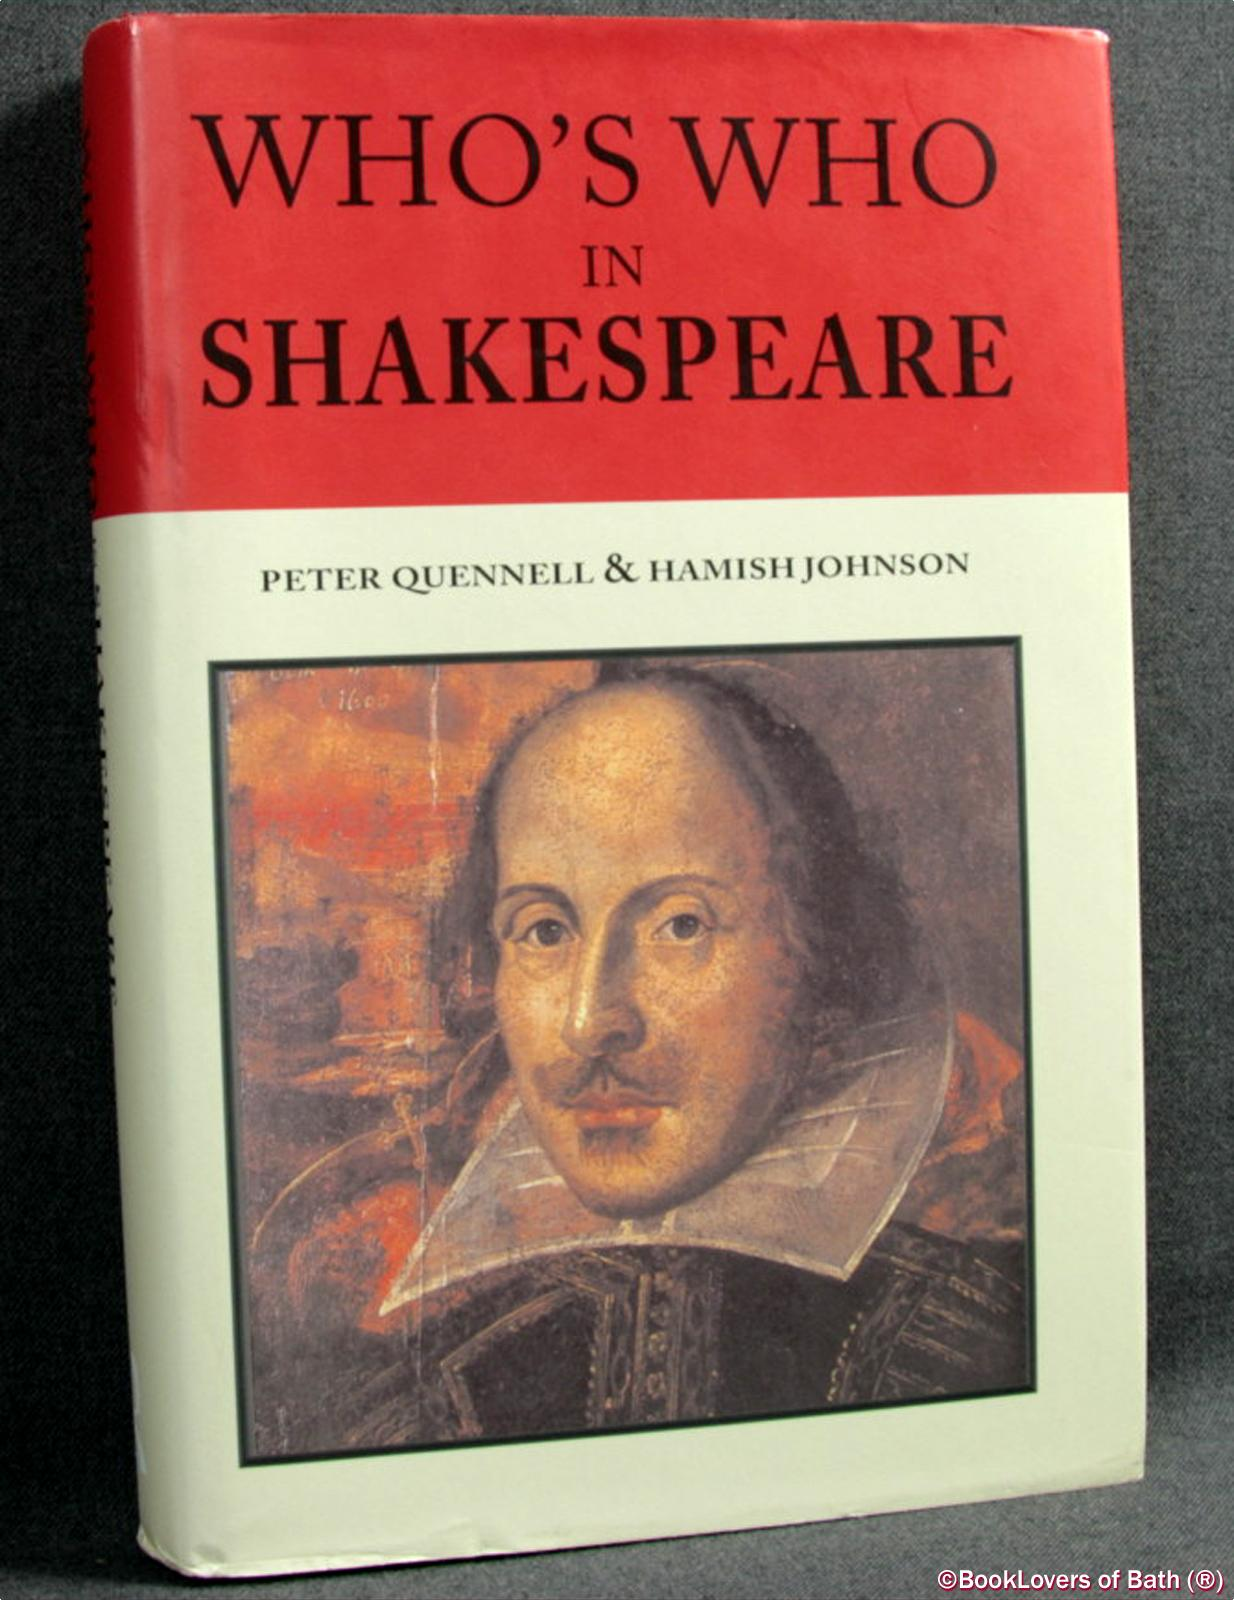 Who's Who in Shakespeare - Peter Quennell & Hamish Johnson